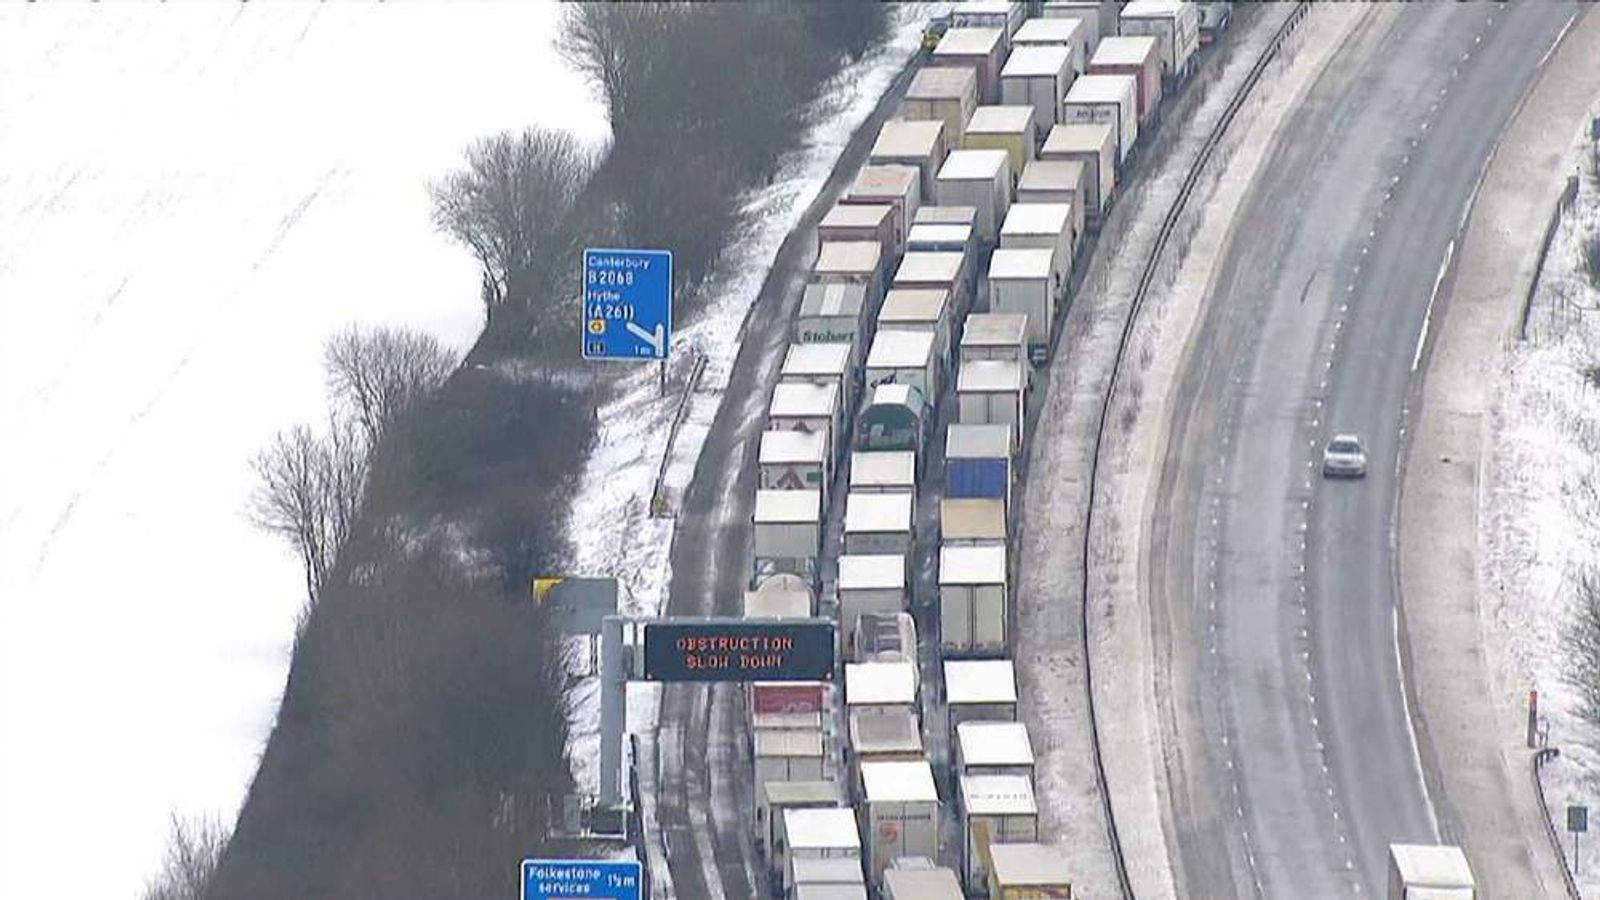 Gridlock on M20 in Kent after heavy snow